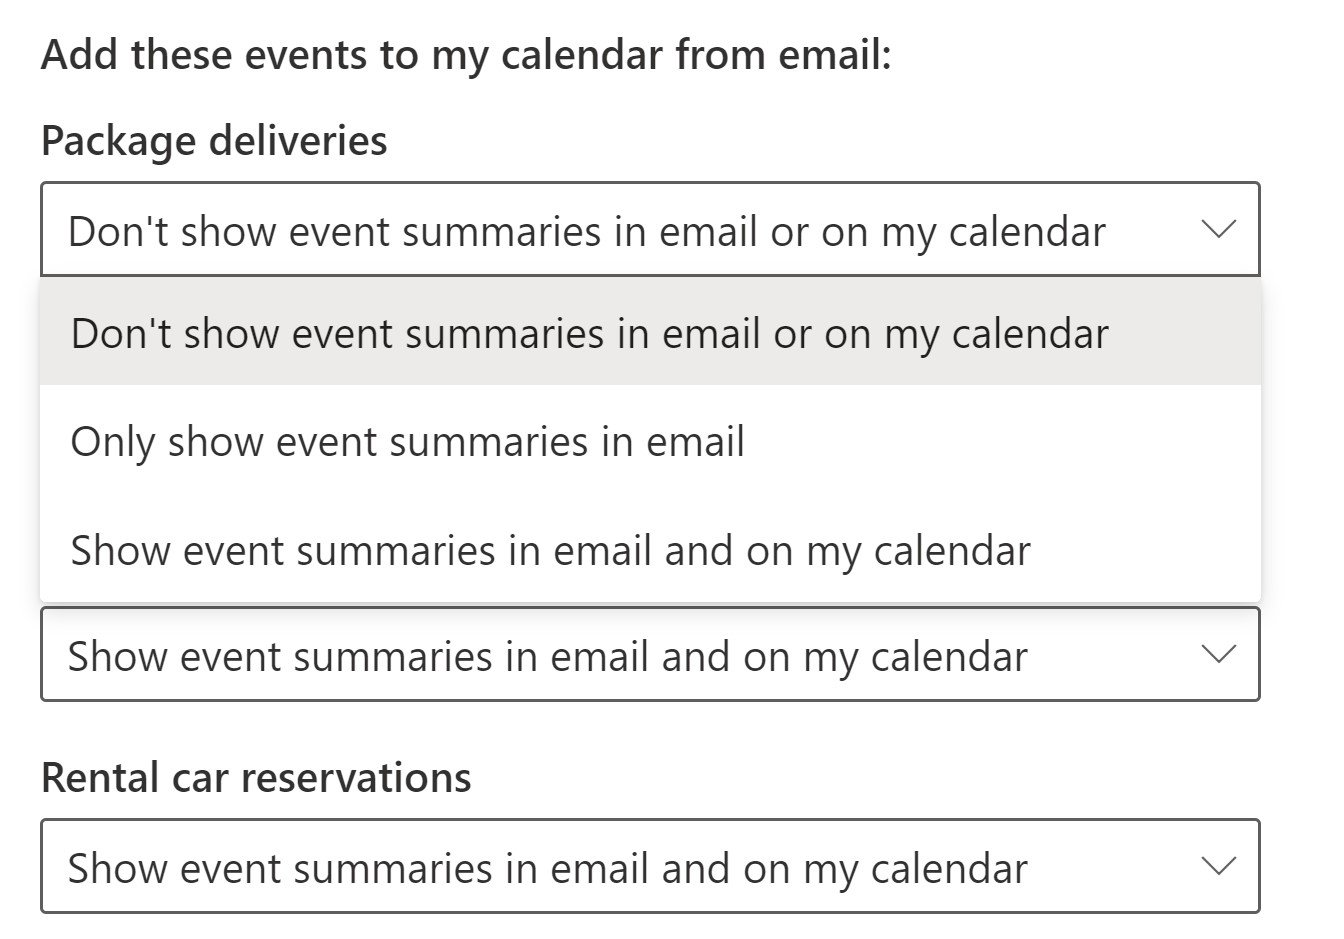 events-from-email-3.jpg